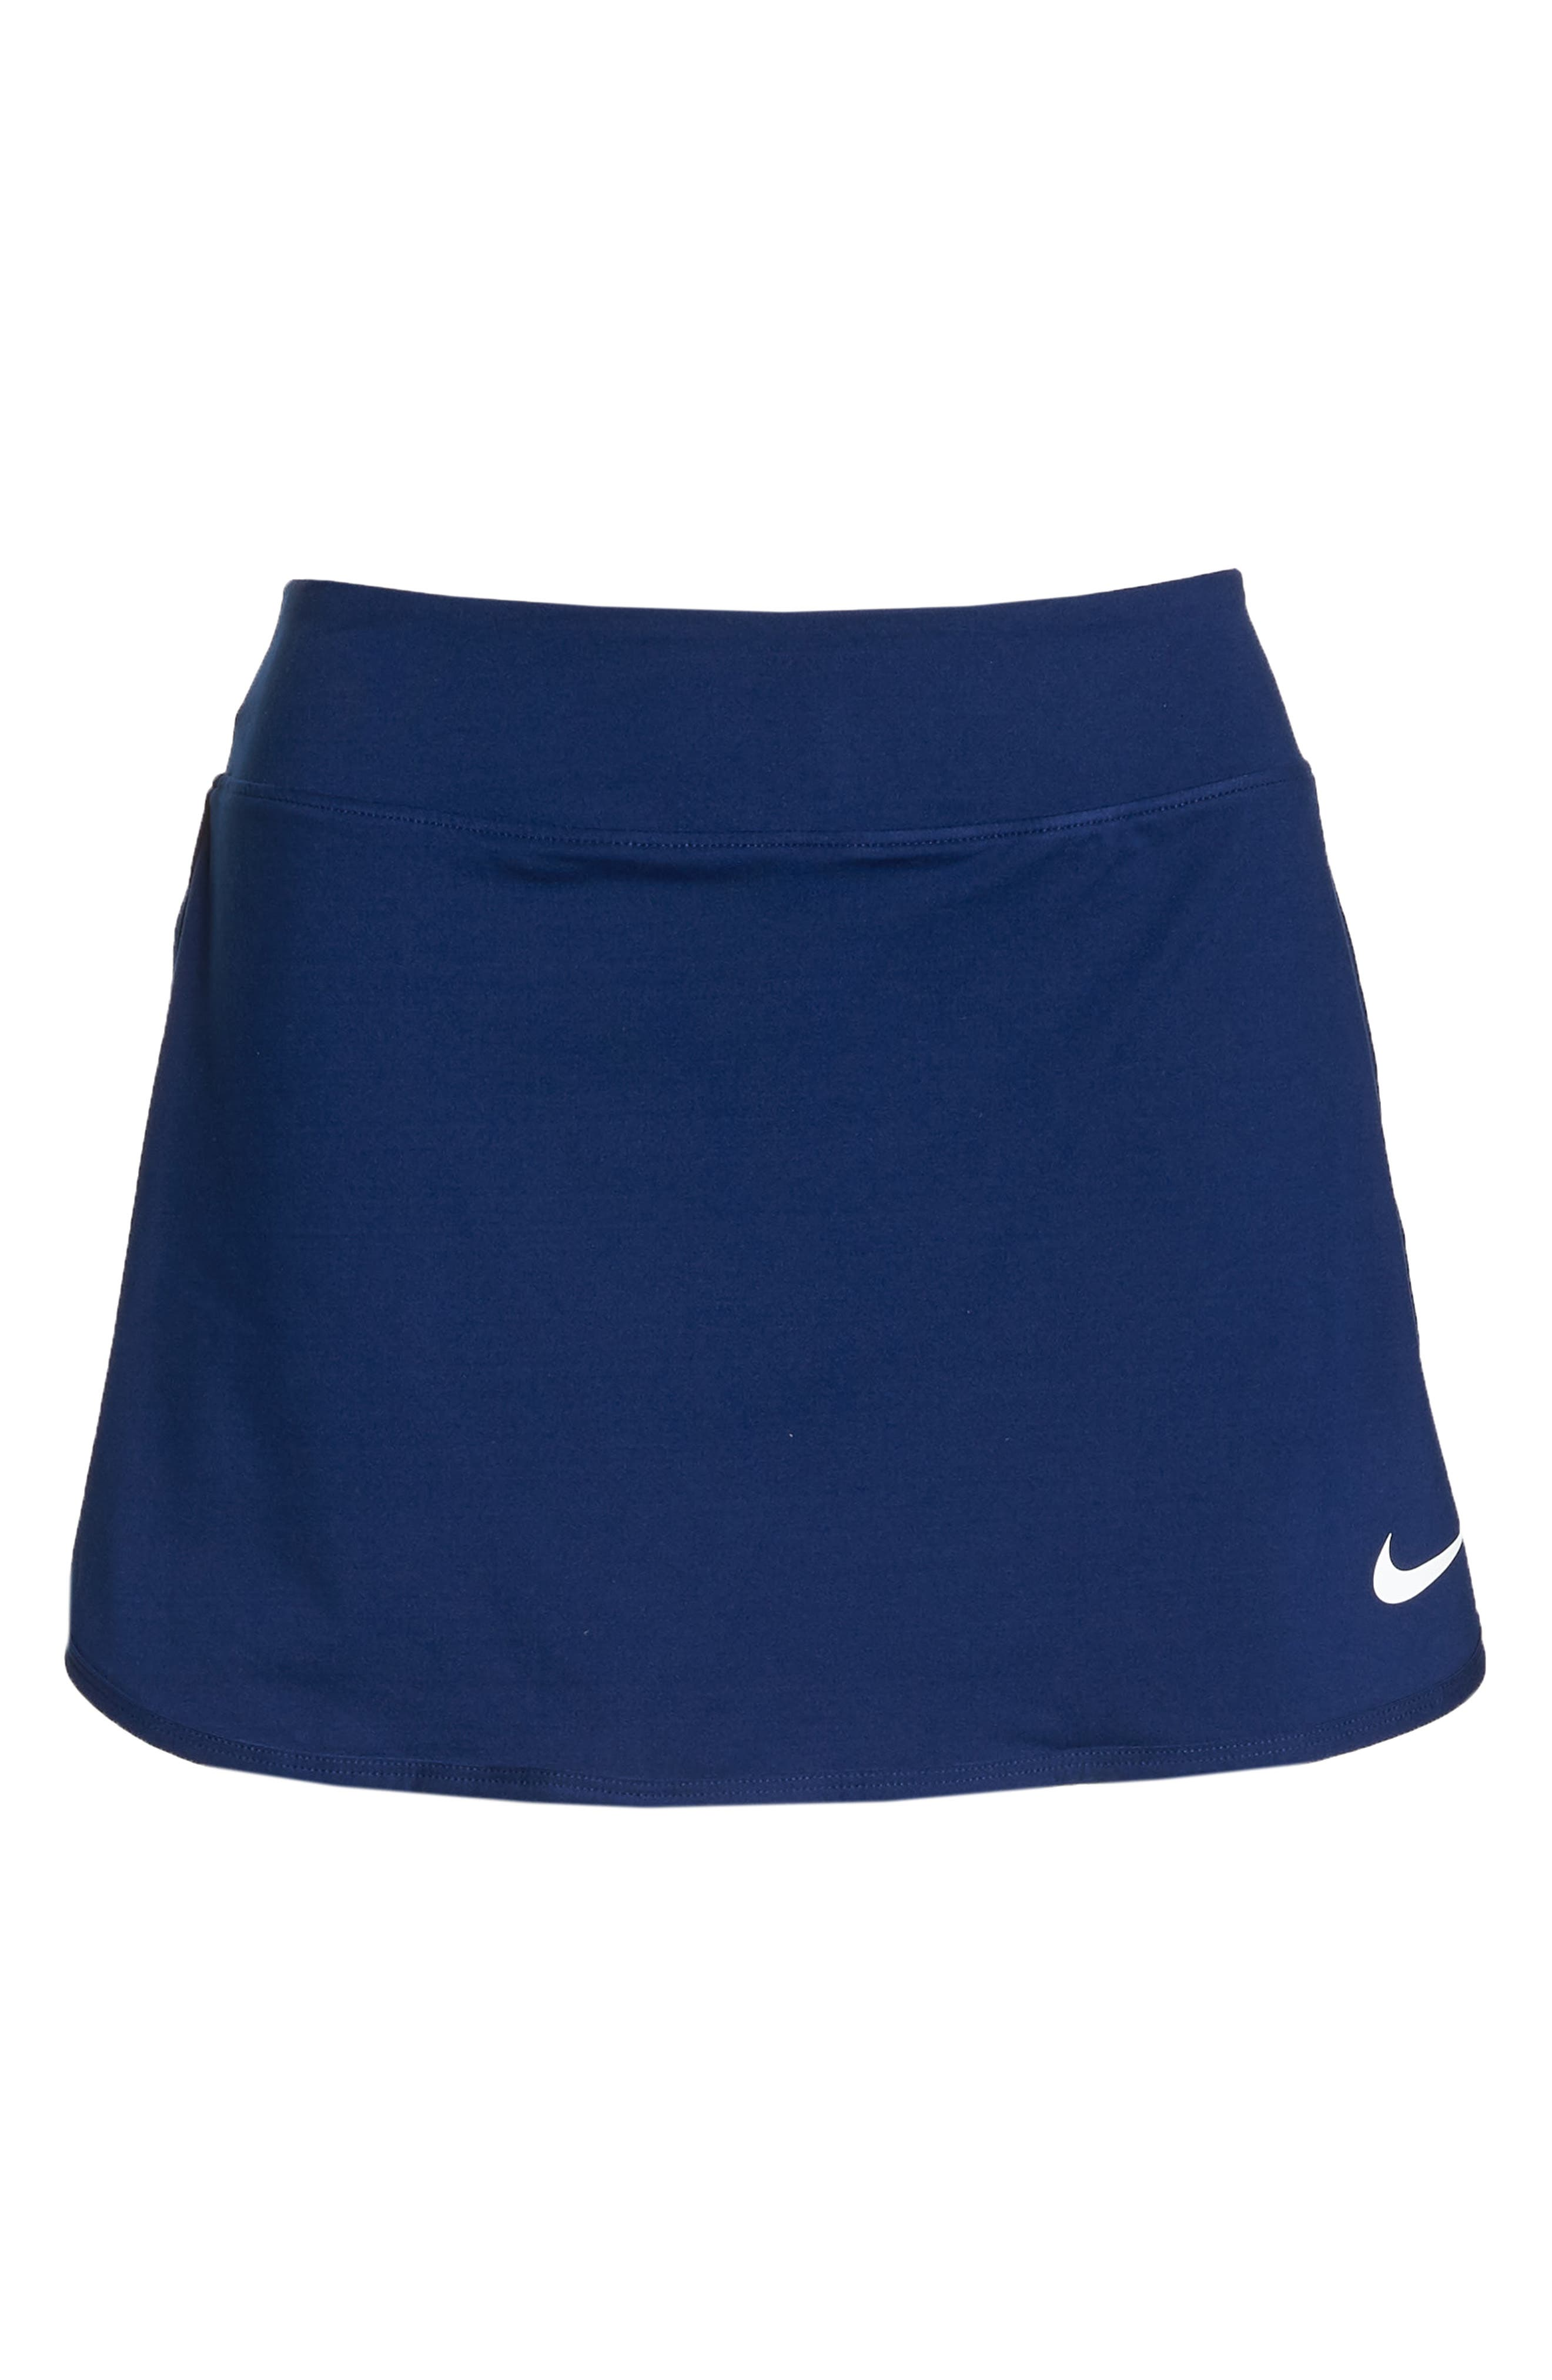 'Pure' Dri-FIT Tennis Skirt,                             Alternate thumbnail 7, color,                             BLUE VOID/ WHITE